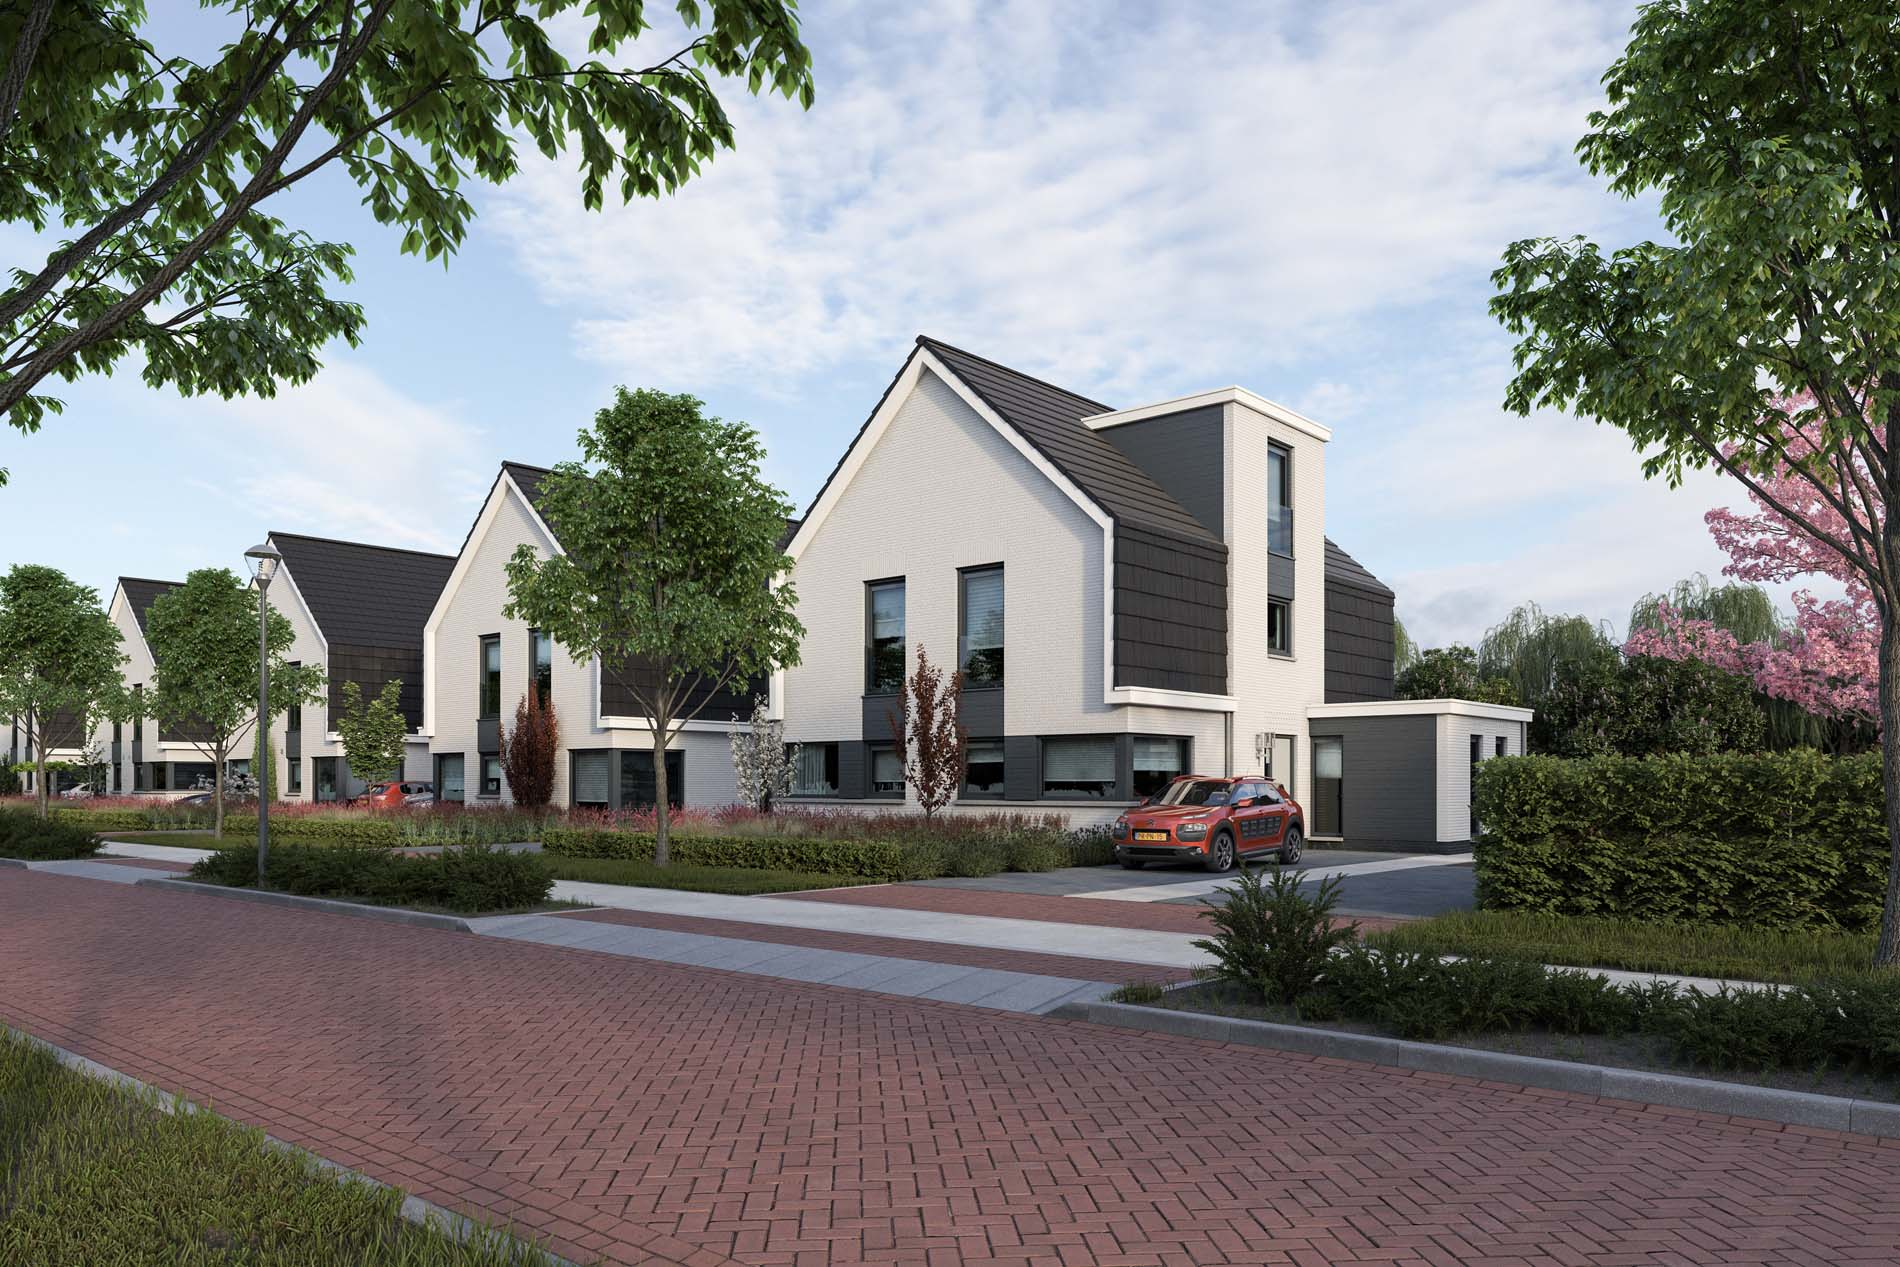 Project - Kloostervelden in Sterksel